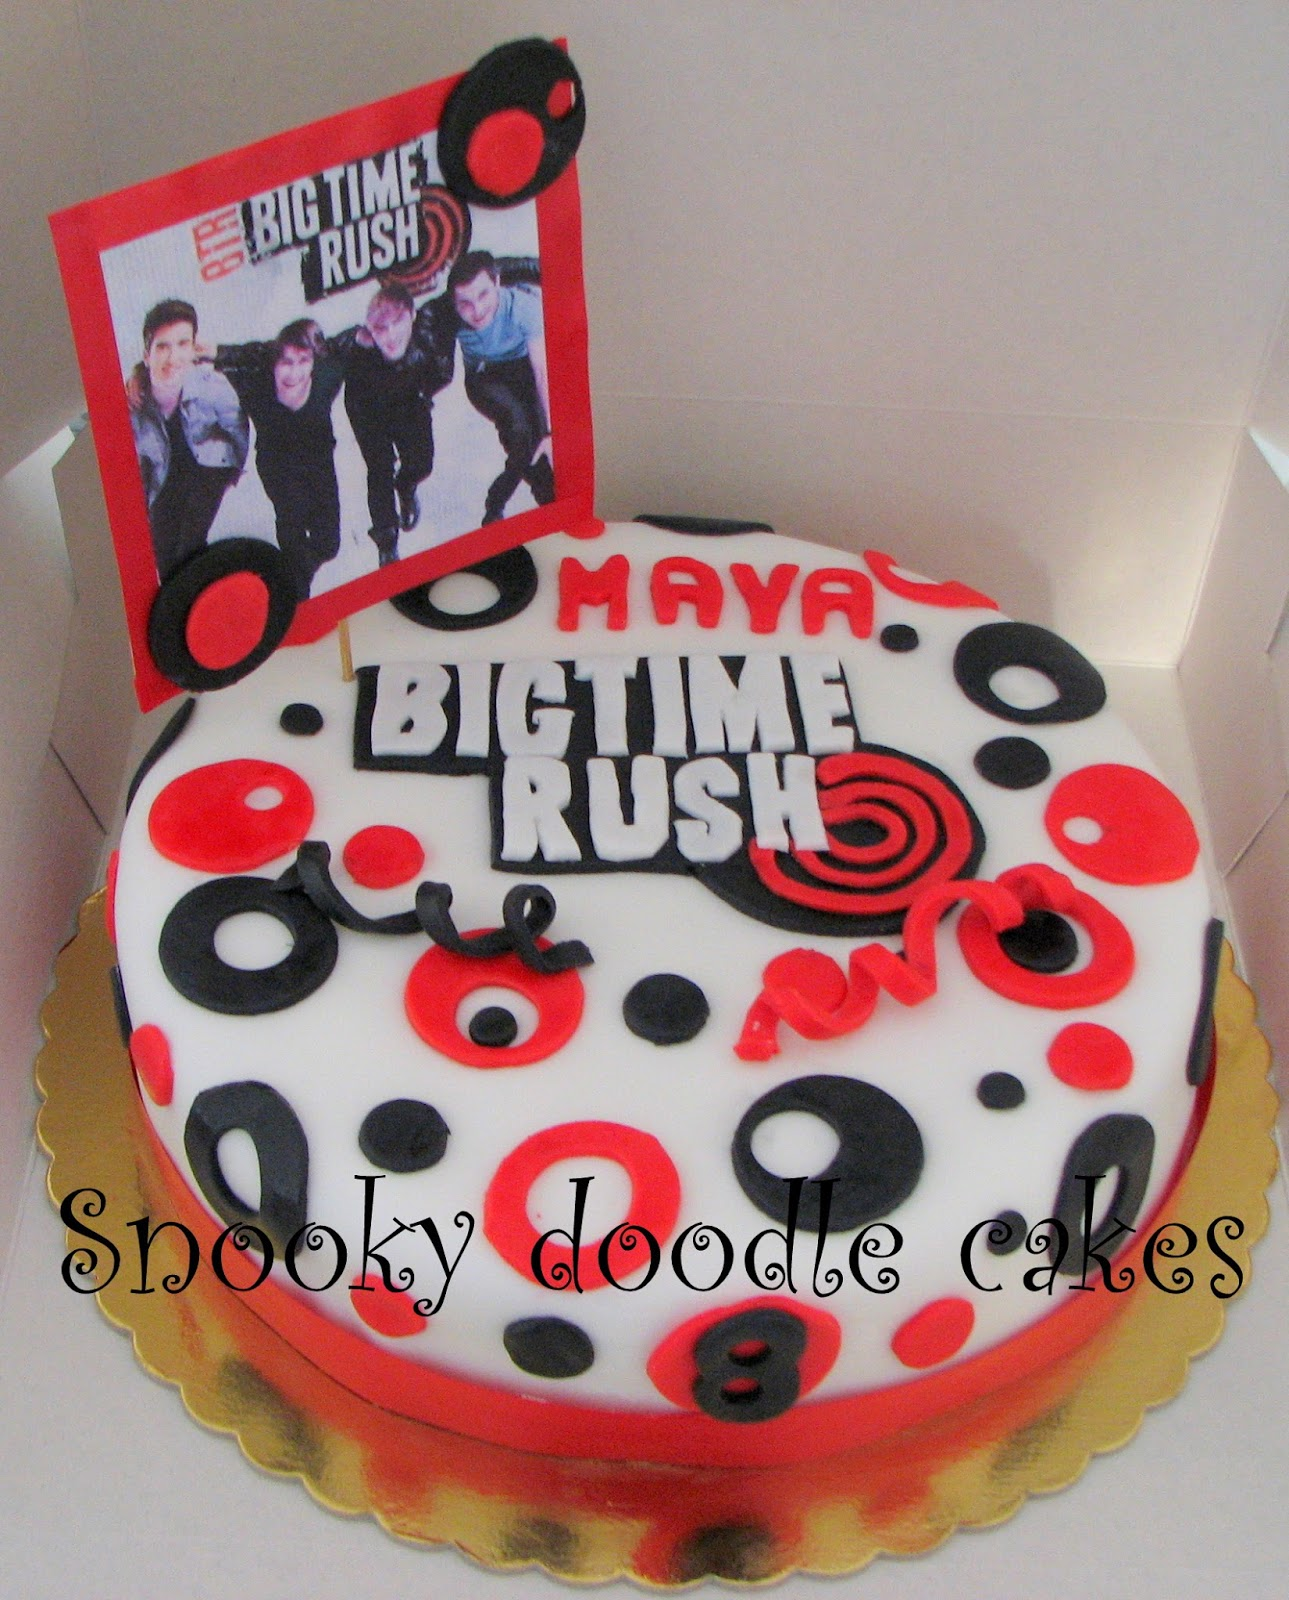 Snooky Doodle Cakes Big Time Rush Cake